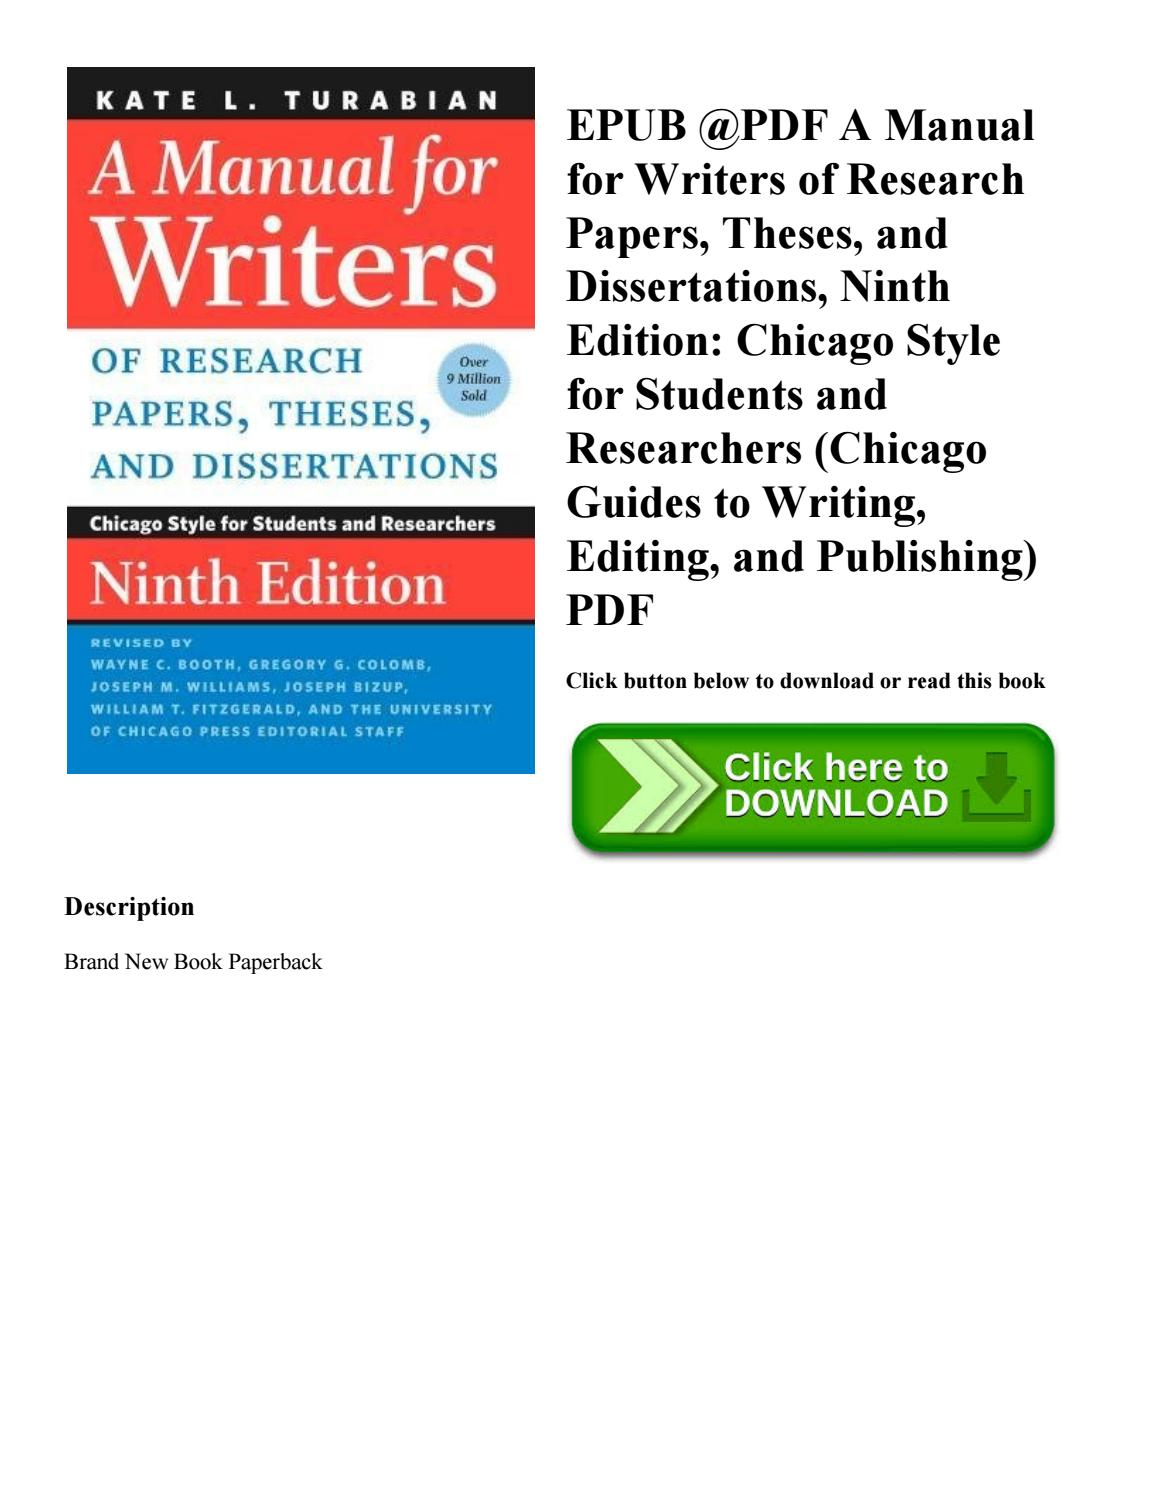 013 Page 1 Manual For Writers Of Researchs Theses And Dissertations 9th Edition Pdf Wonderful A Research Papers Full